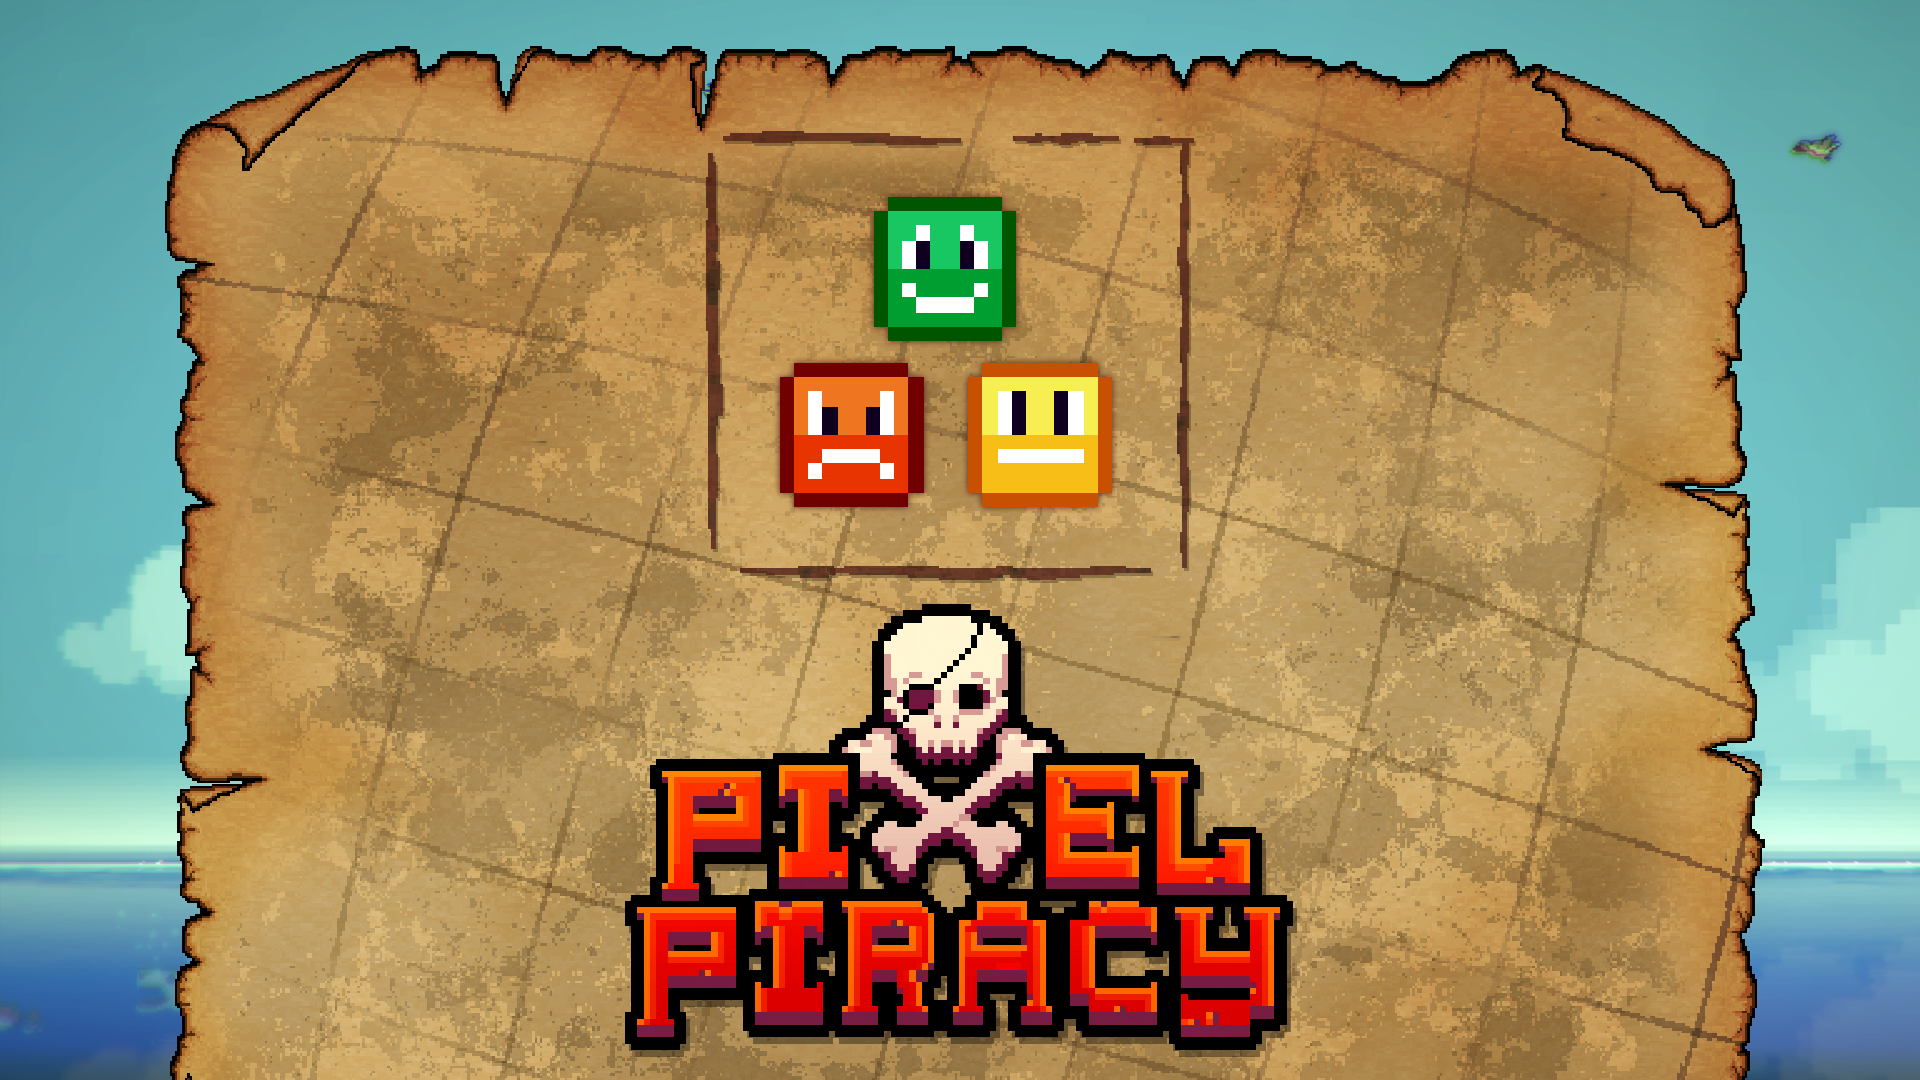 I'm a mighty pirate!